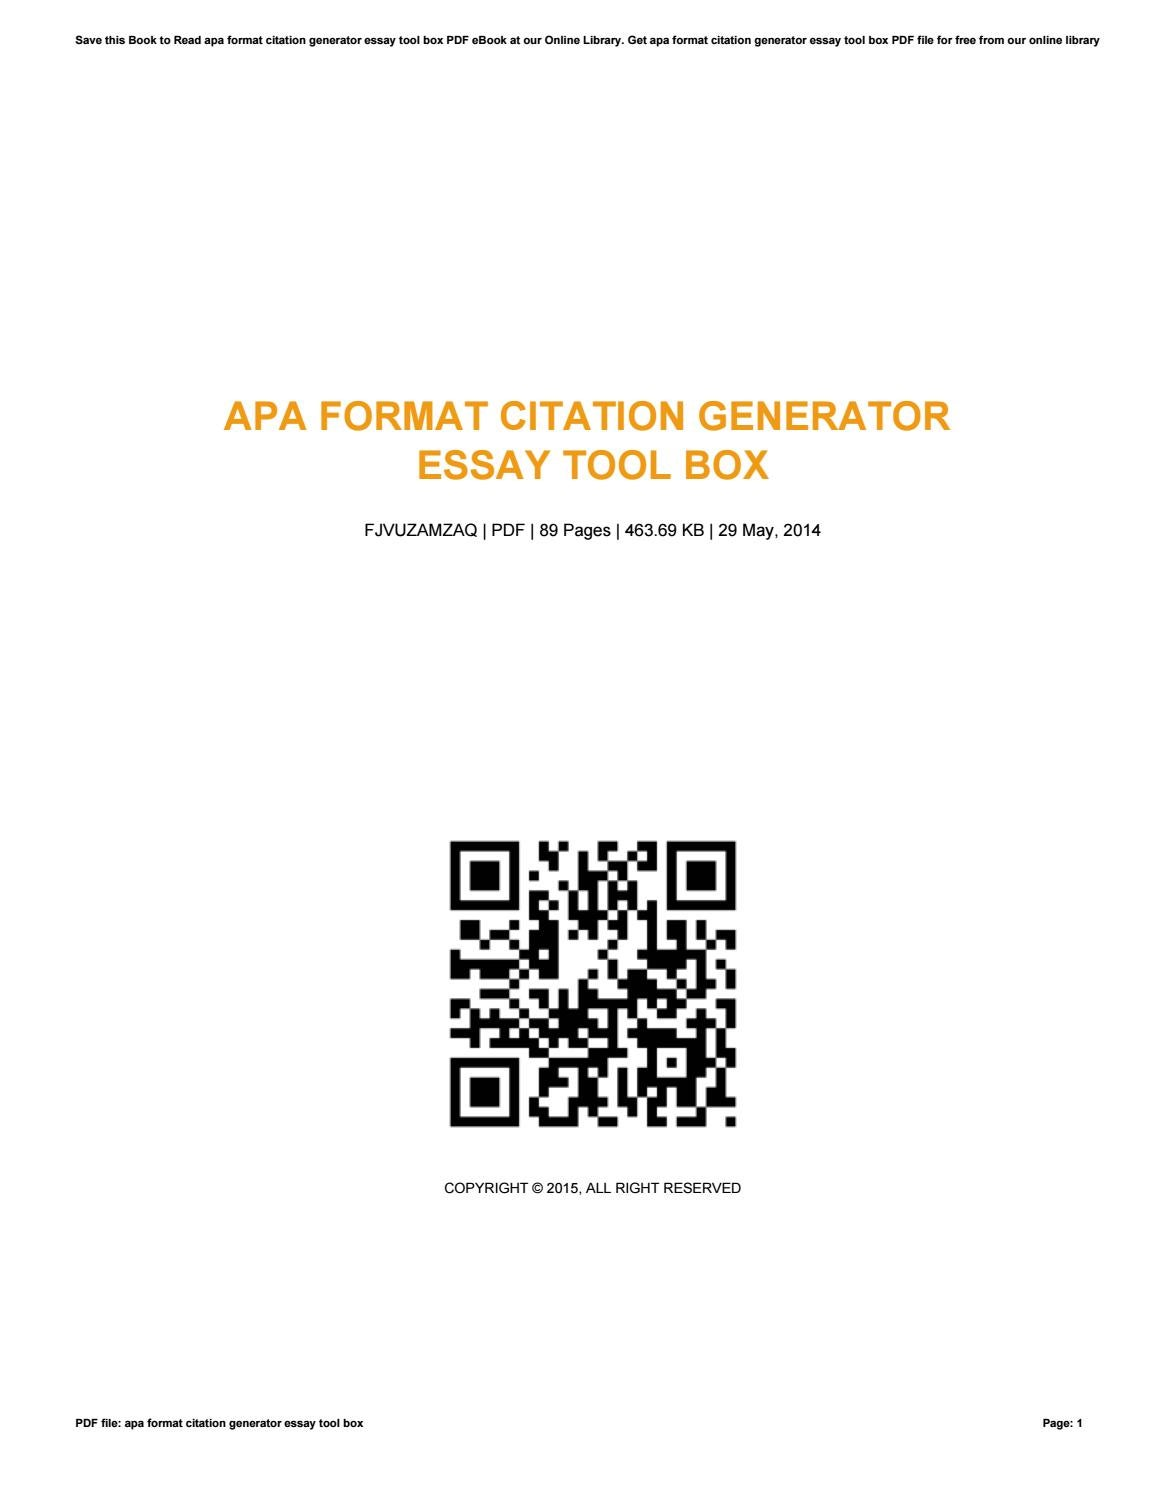 Apa format citation generator essay tool box by